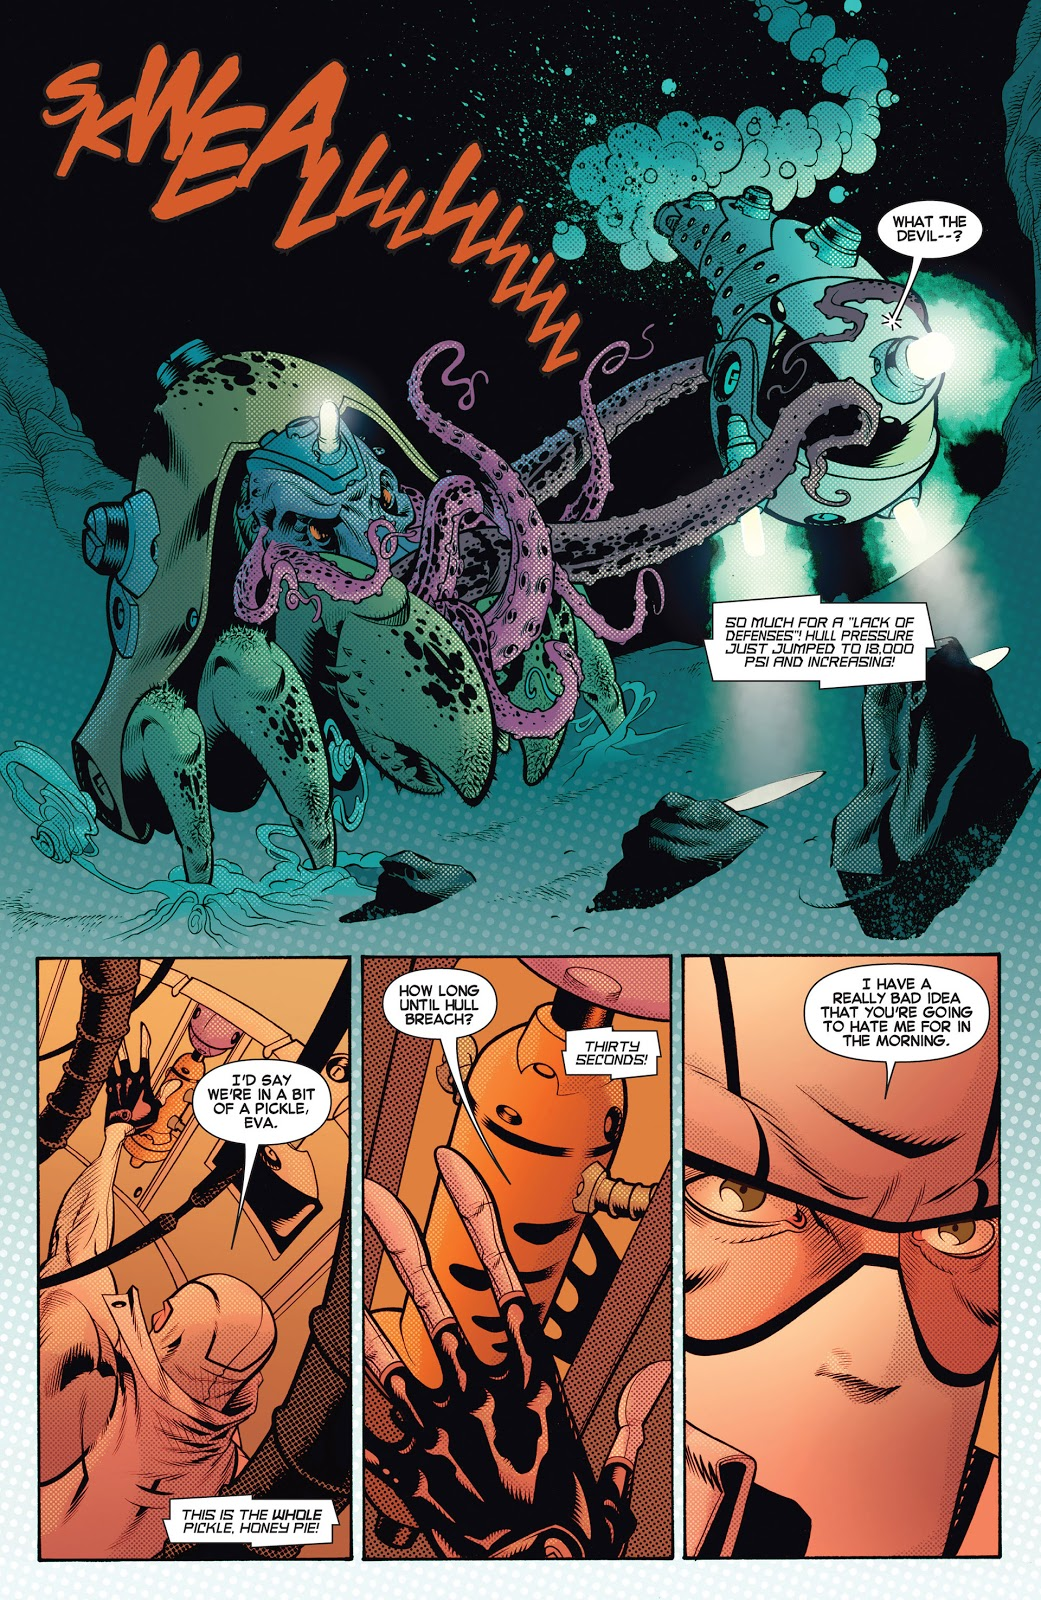 Fantomex review